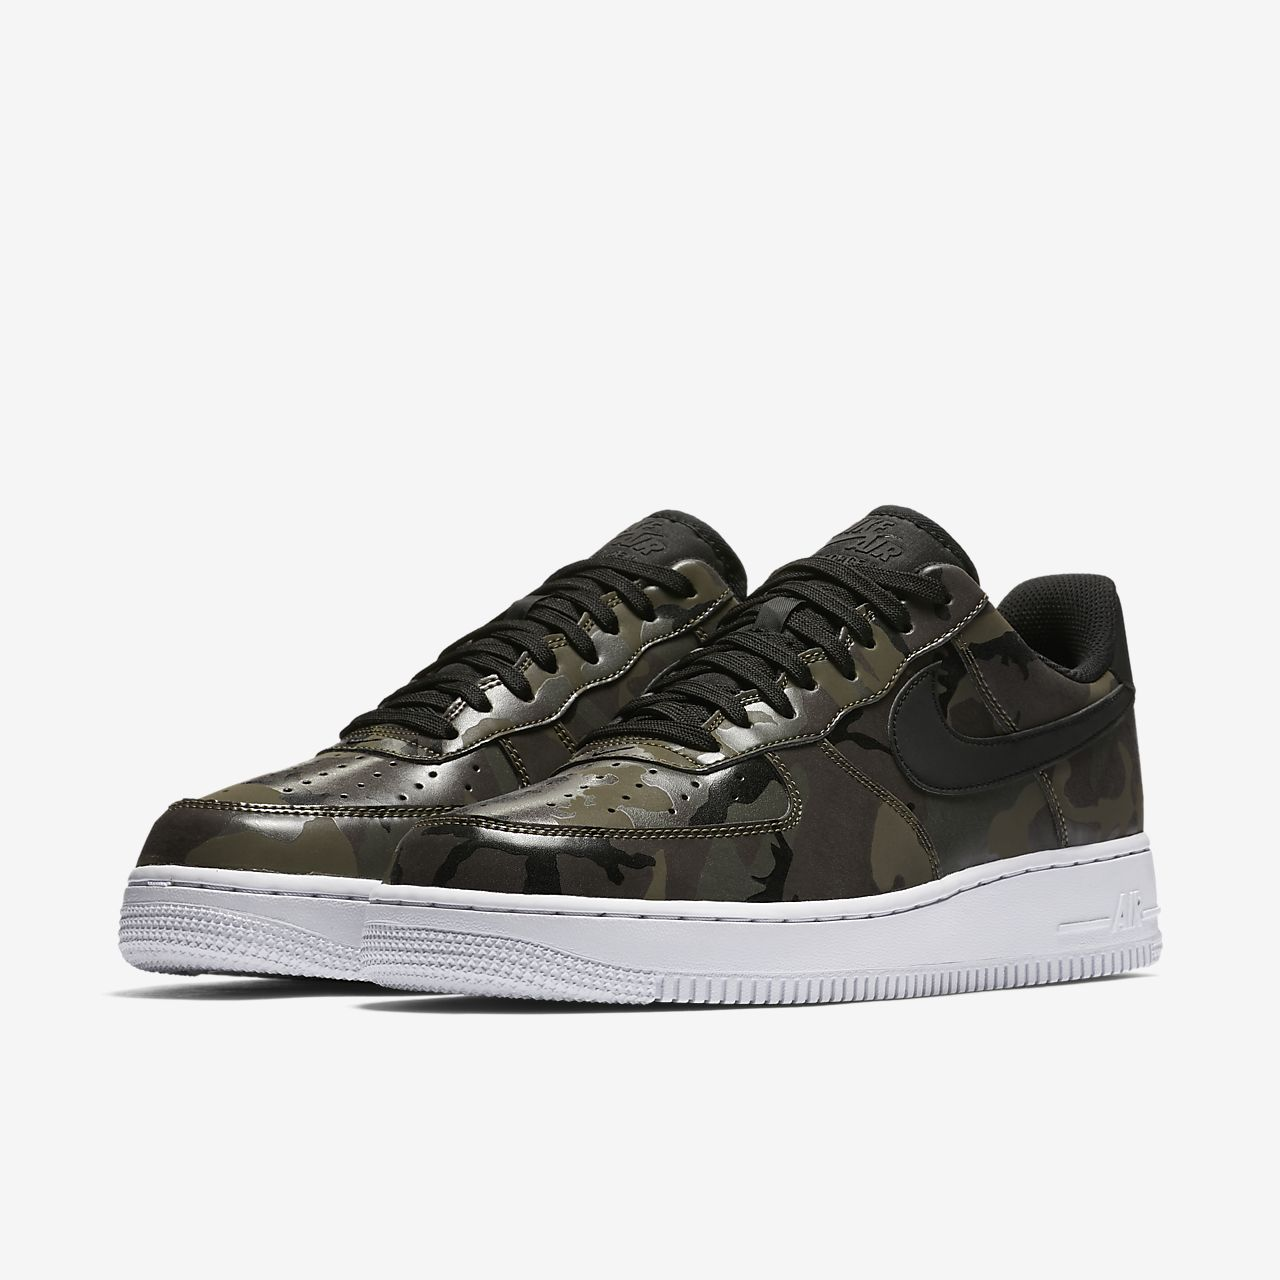 Nike Air Force 1 07 Low Camo Mens Shoe